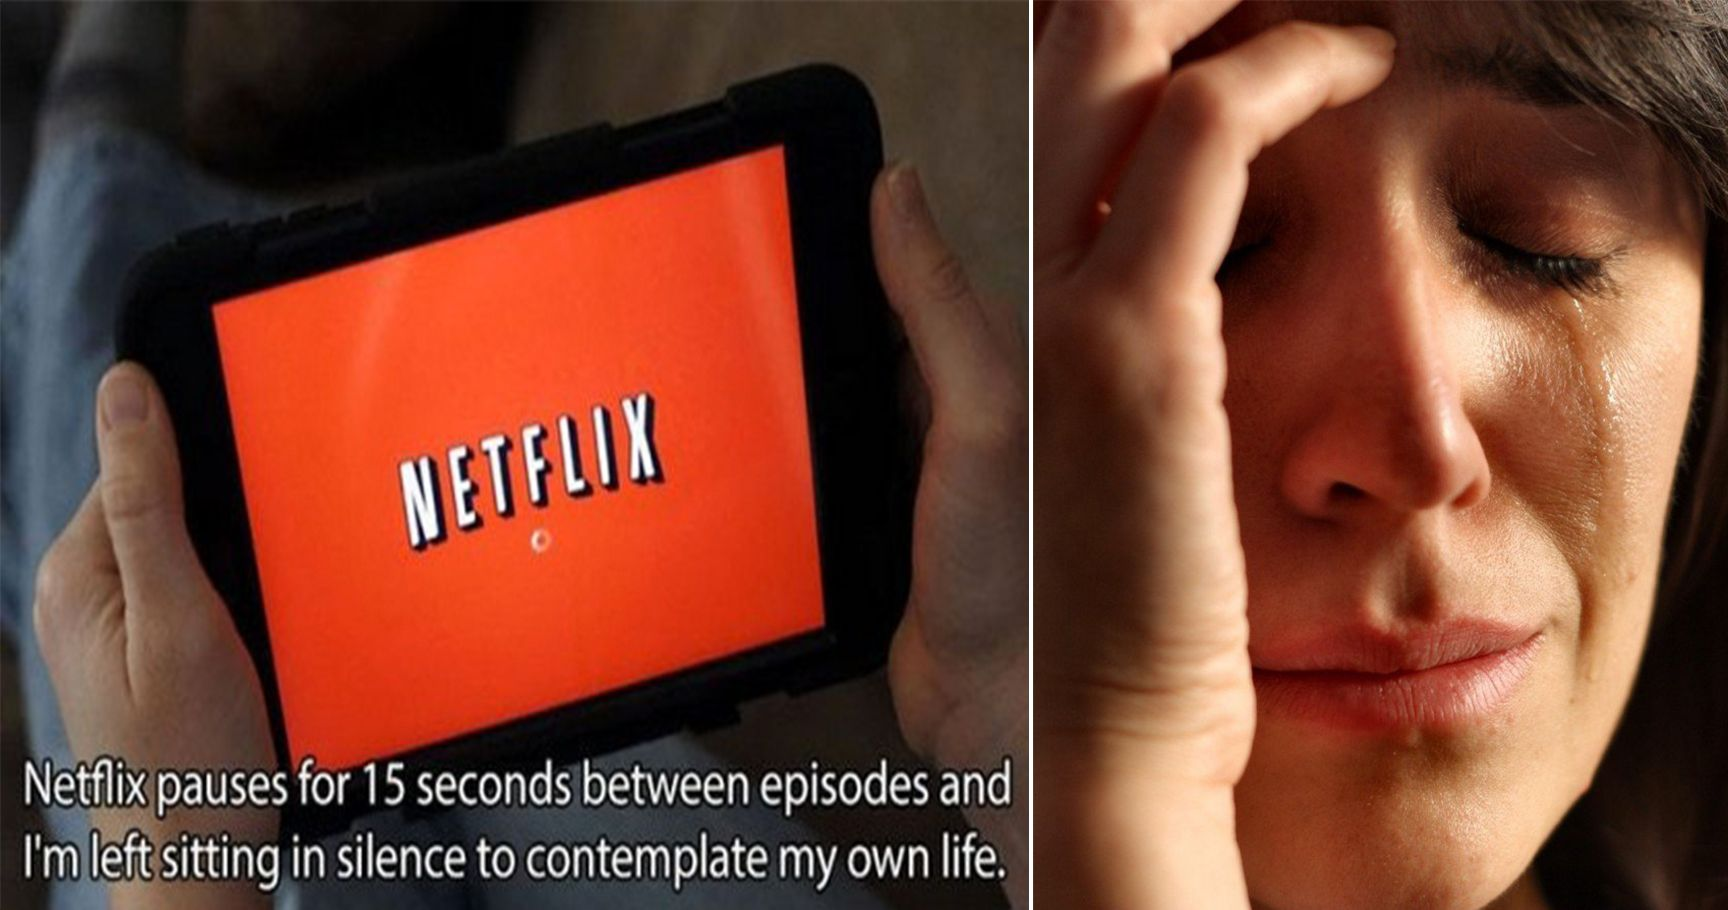 18 'First World Problems' We're All Sick Of Dealing With